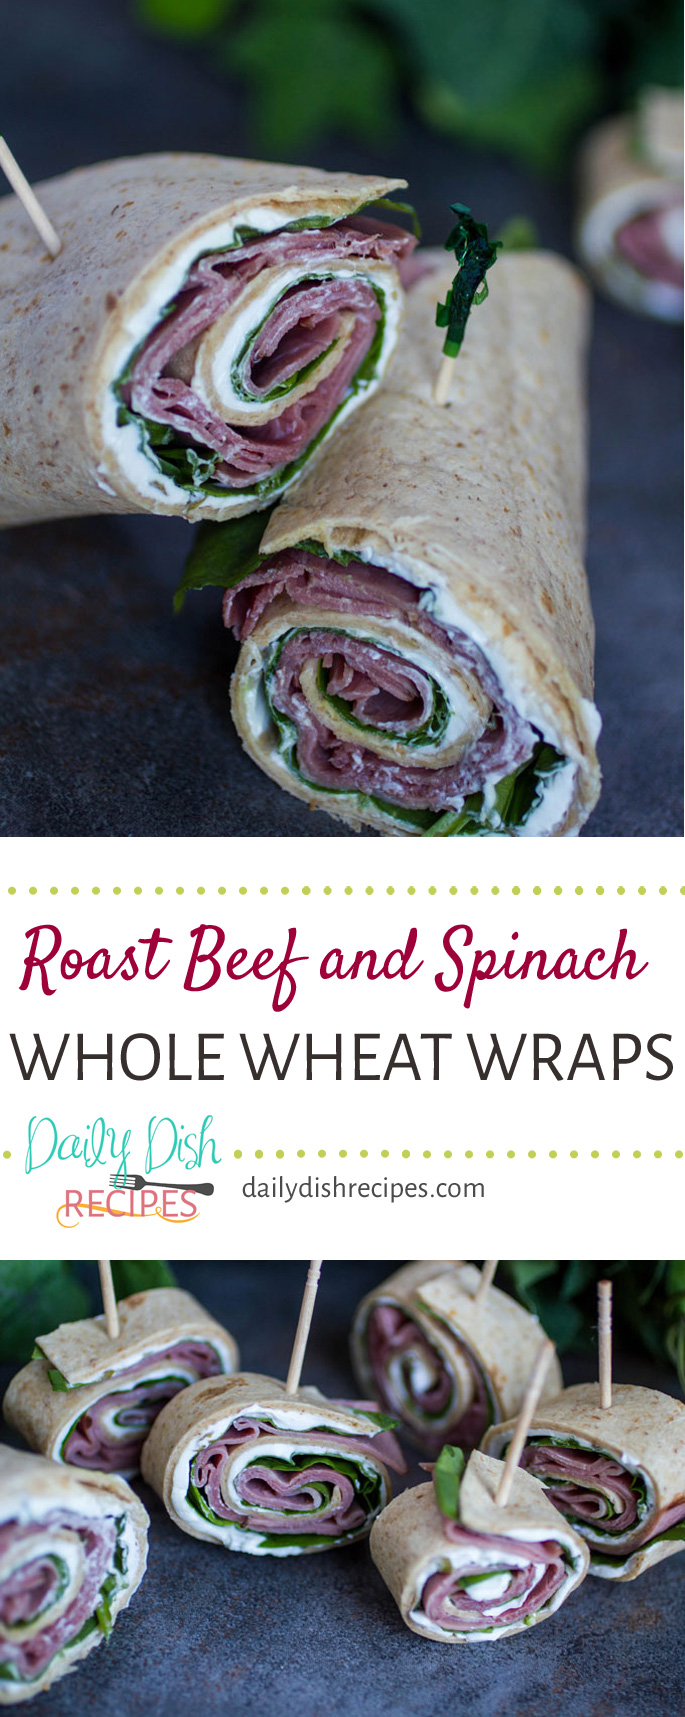 Need a quick and healthy lunch idea? These Roast Beef and Spinach Whole Wheat Wraps  are a huge hit at our house and I think they will be at yours too. Plus they are GREAT to take with you to work or slice into pinwheels as an appetizer for a party!